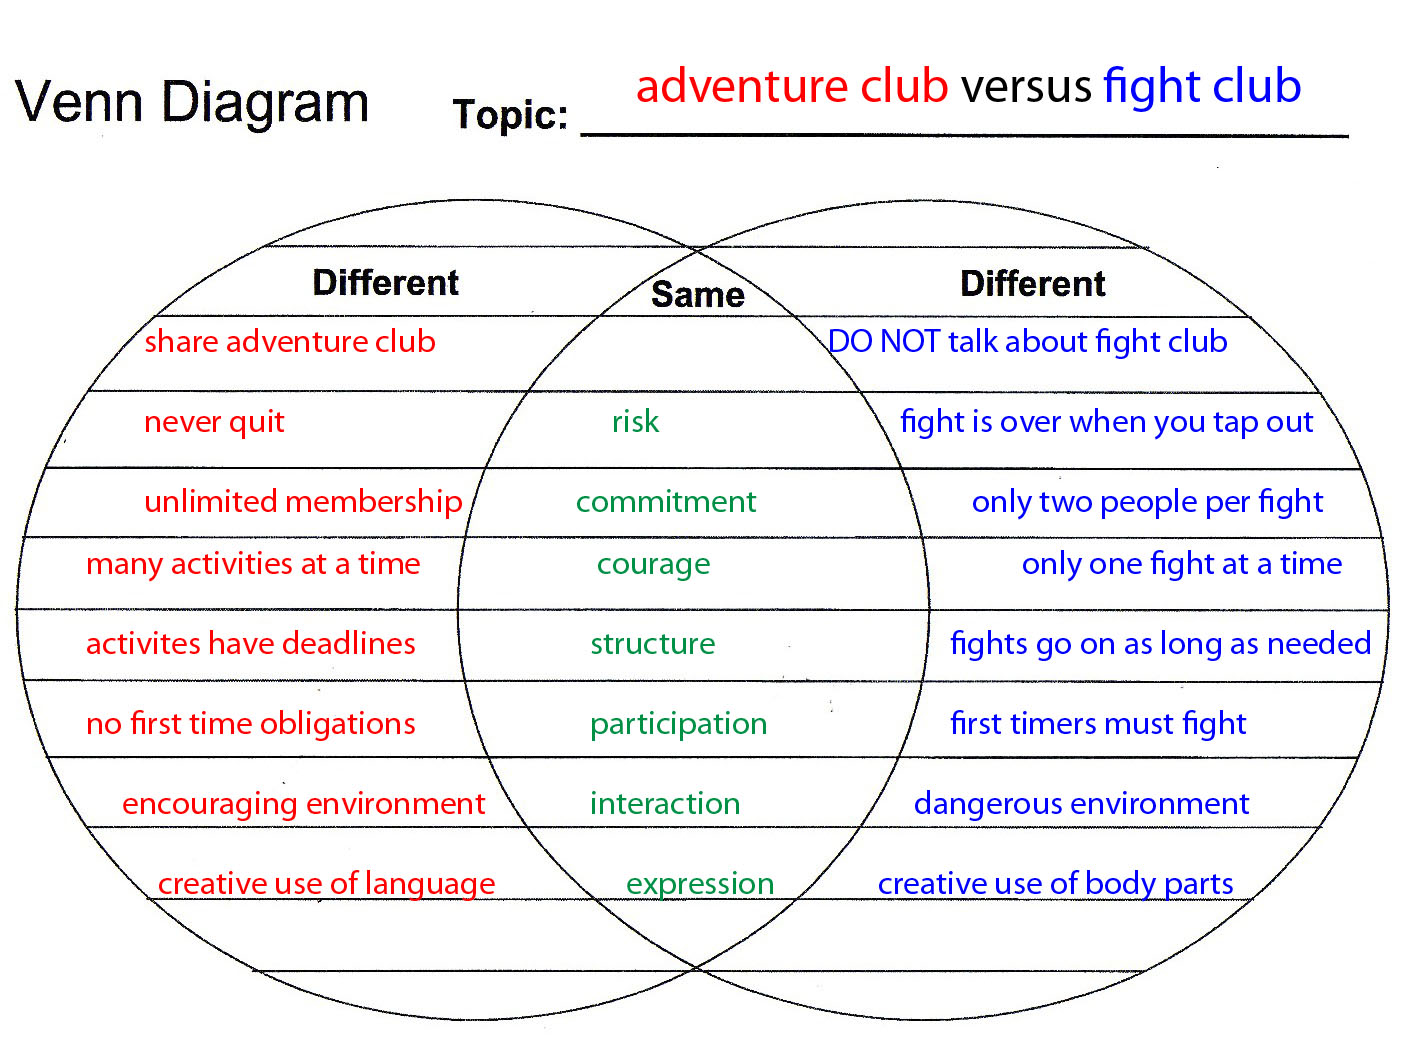 Venn diagram adventureclubinteractive venn diagram copy ccuart